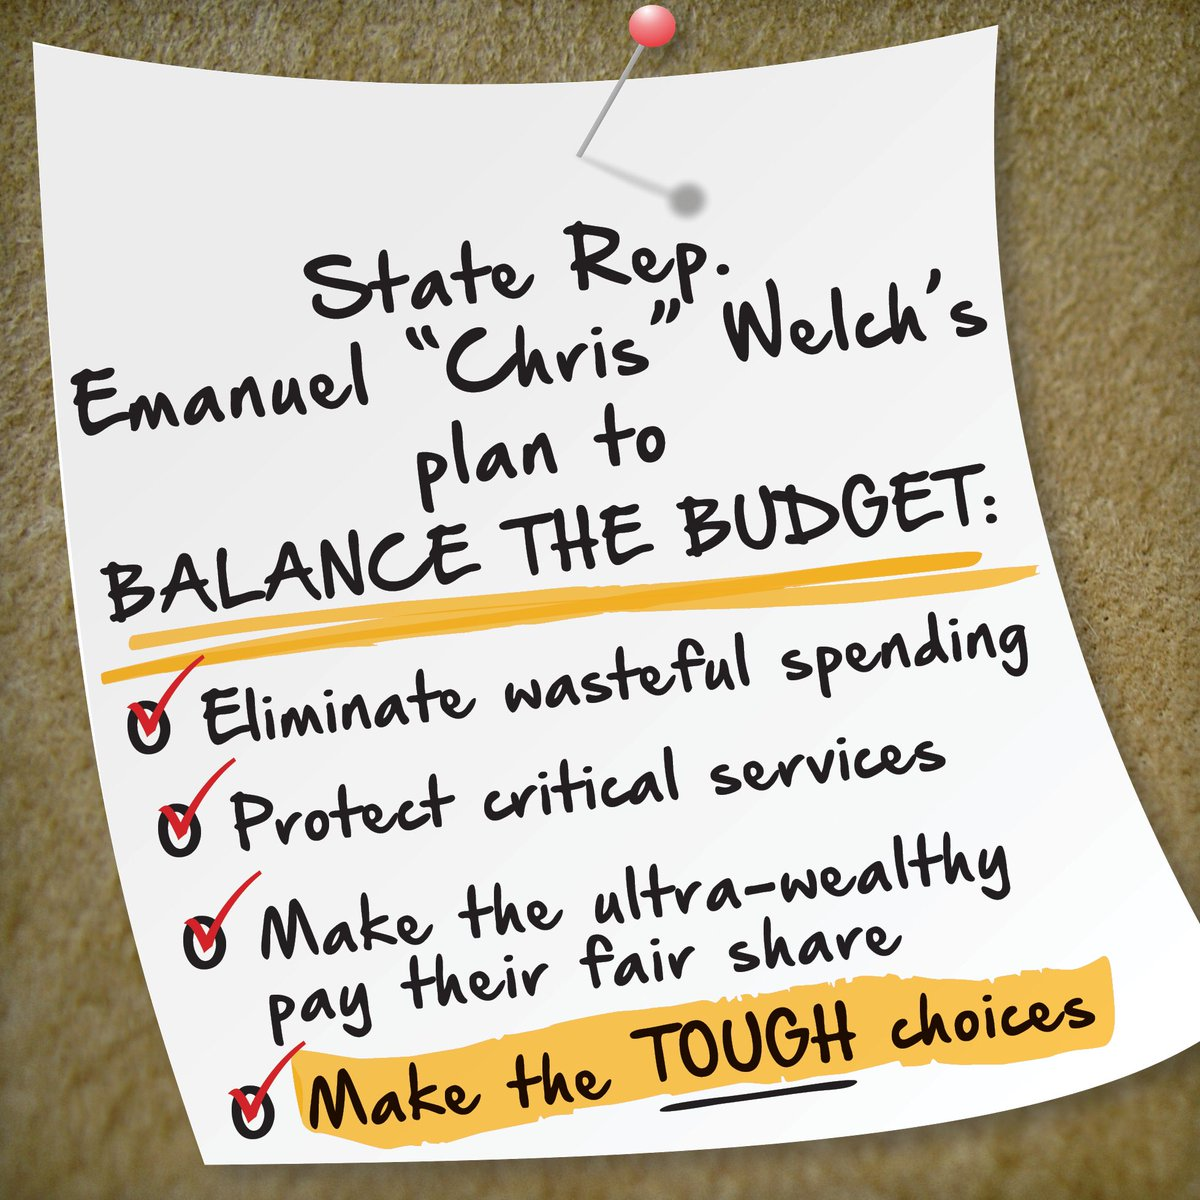 test Twitter Media - I support passing a responsible balanced budget for the State of Illinois.  Here is my plan to get it done!  #budgetnow #closetheloopholes https://t.co/F3FkoZ1dEx